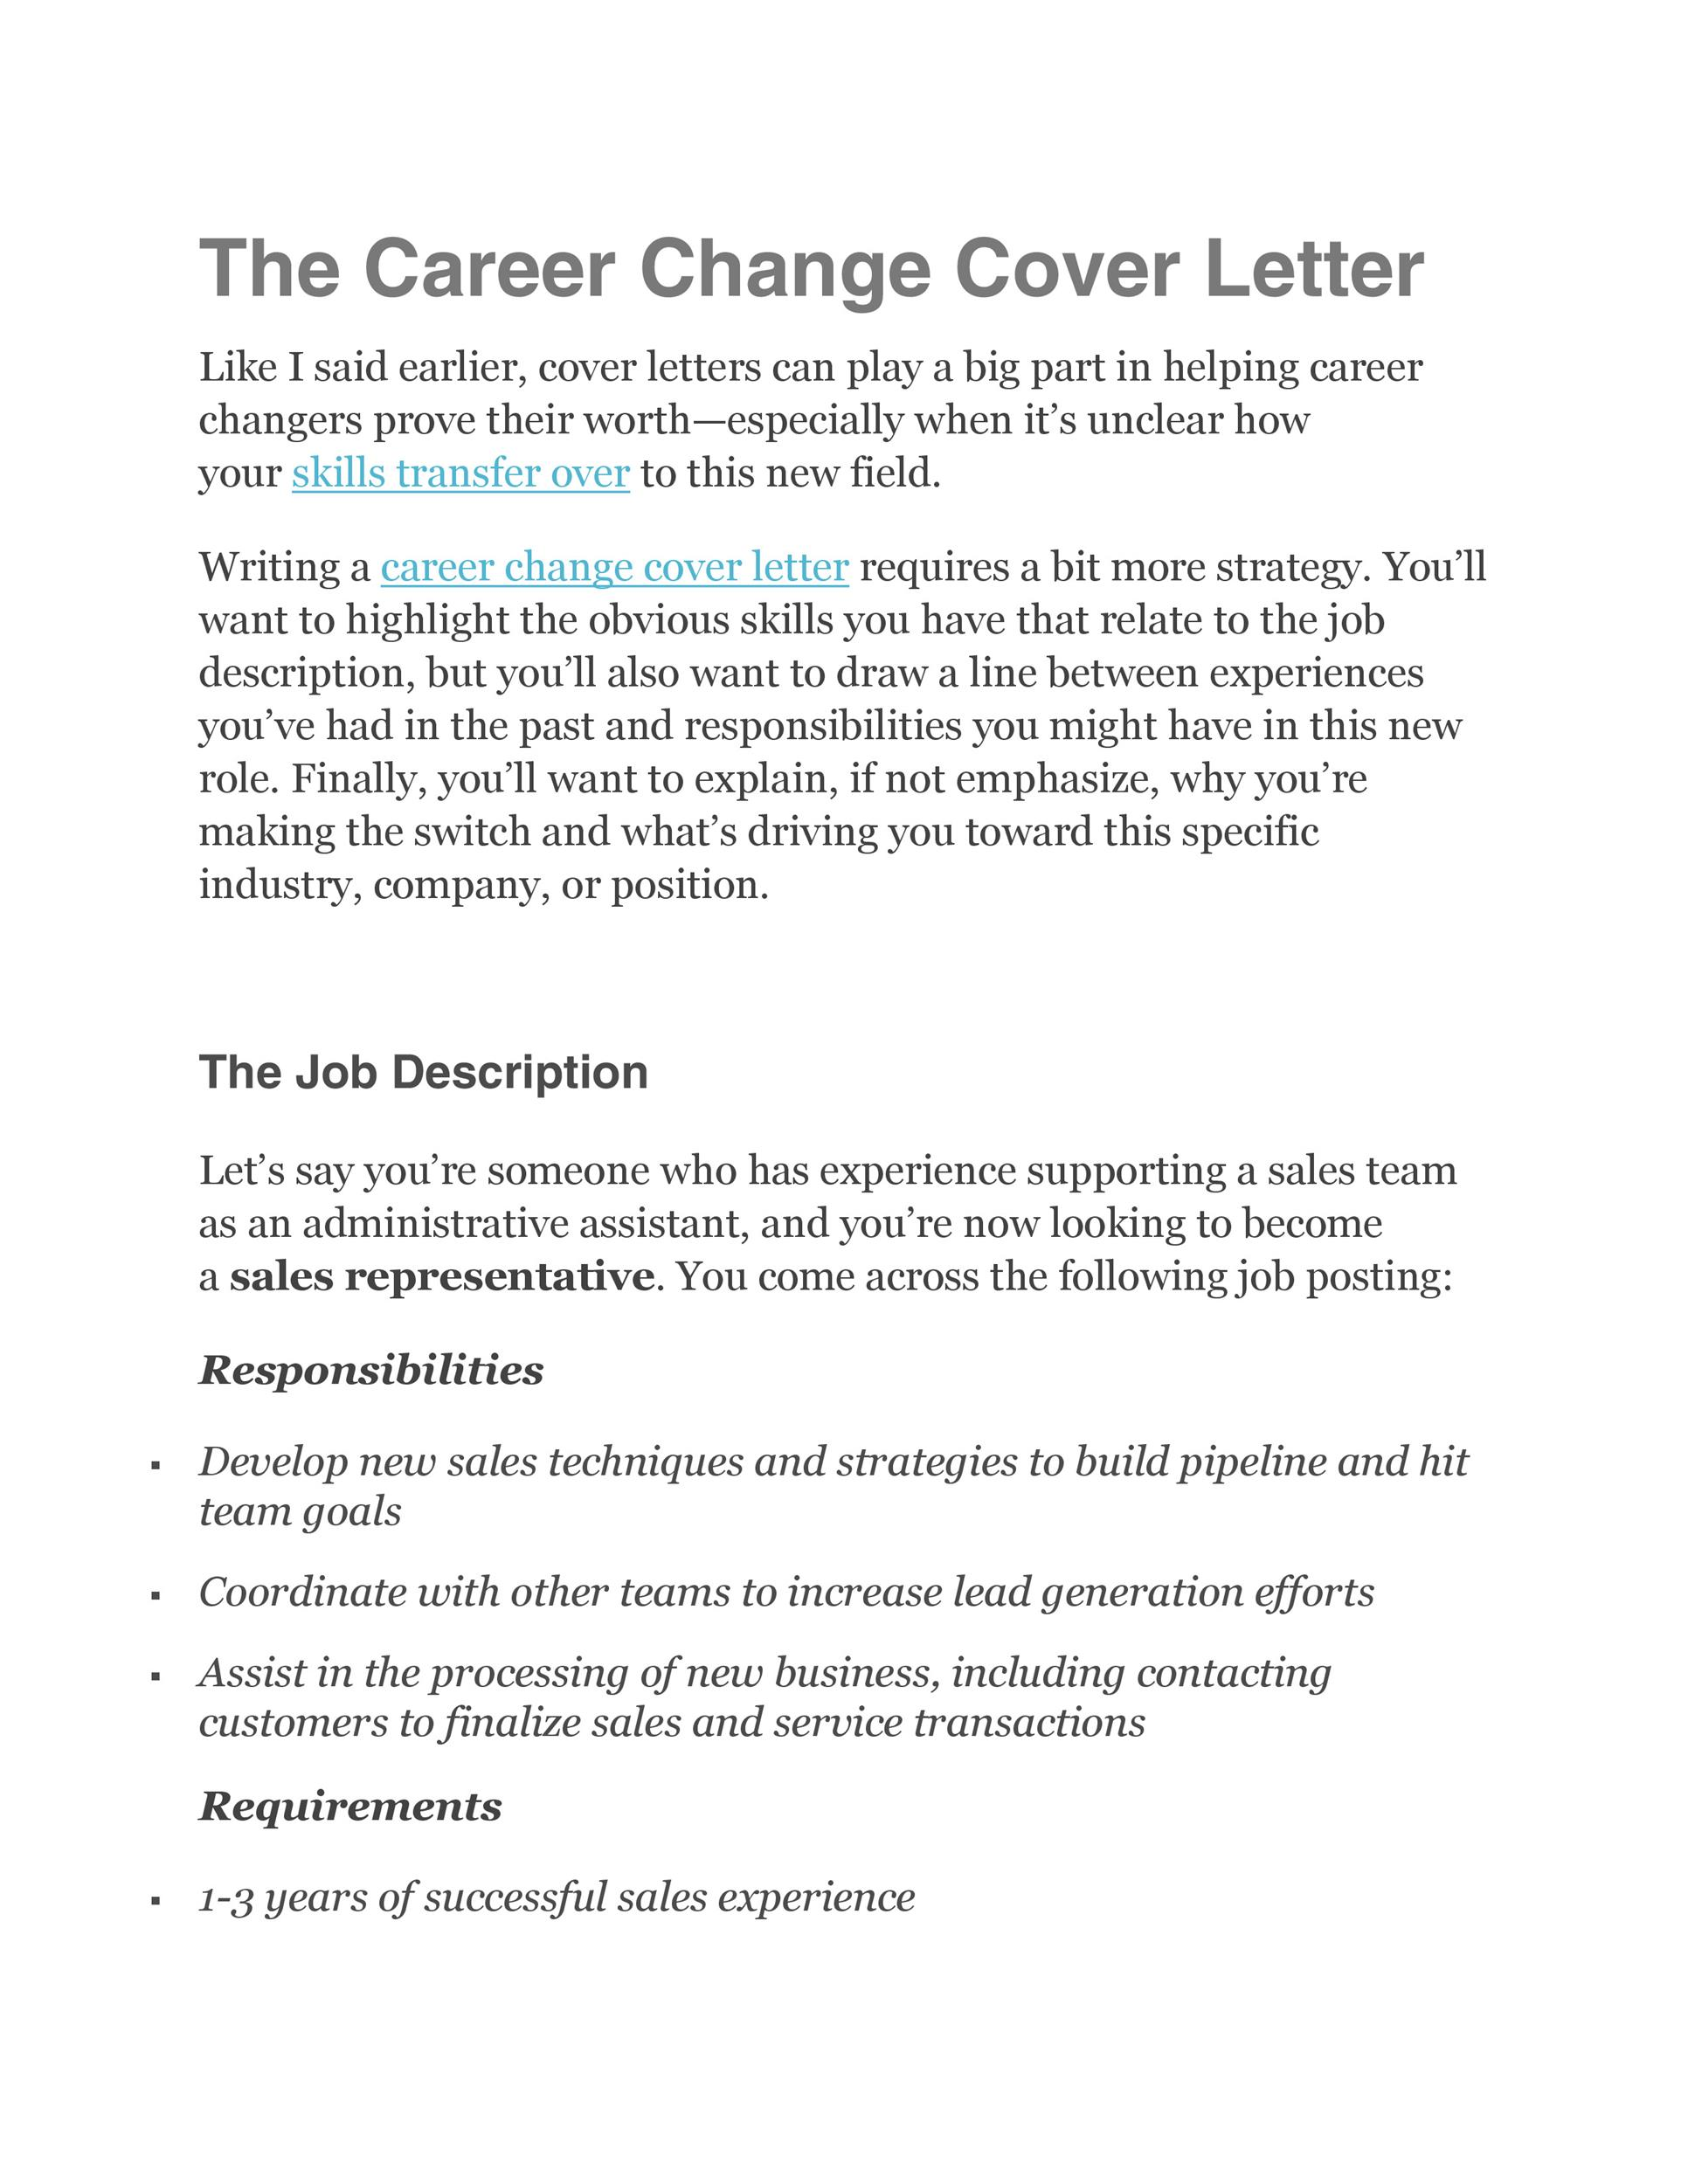 Free career change cover letter 35